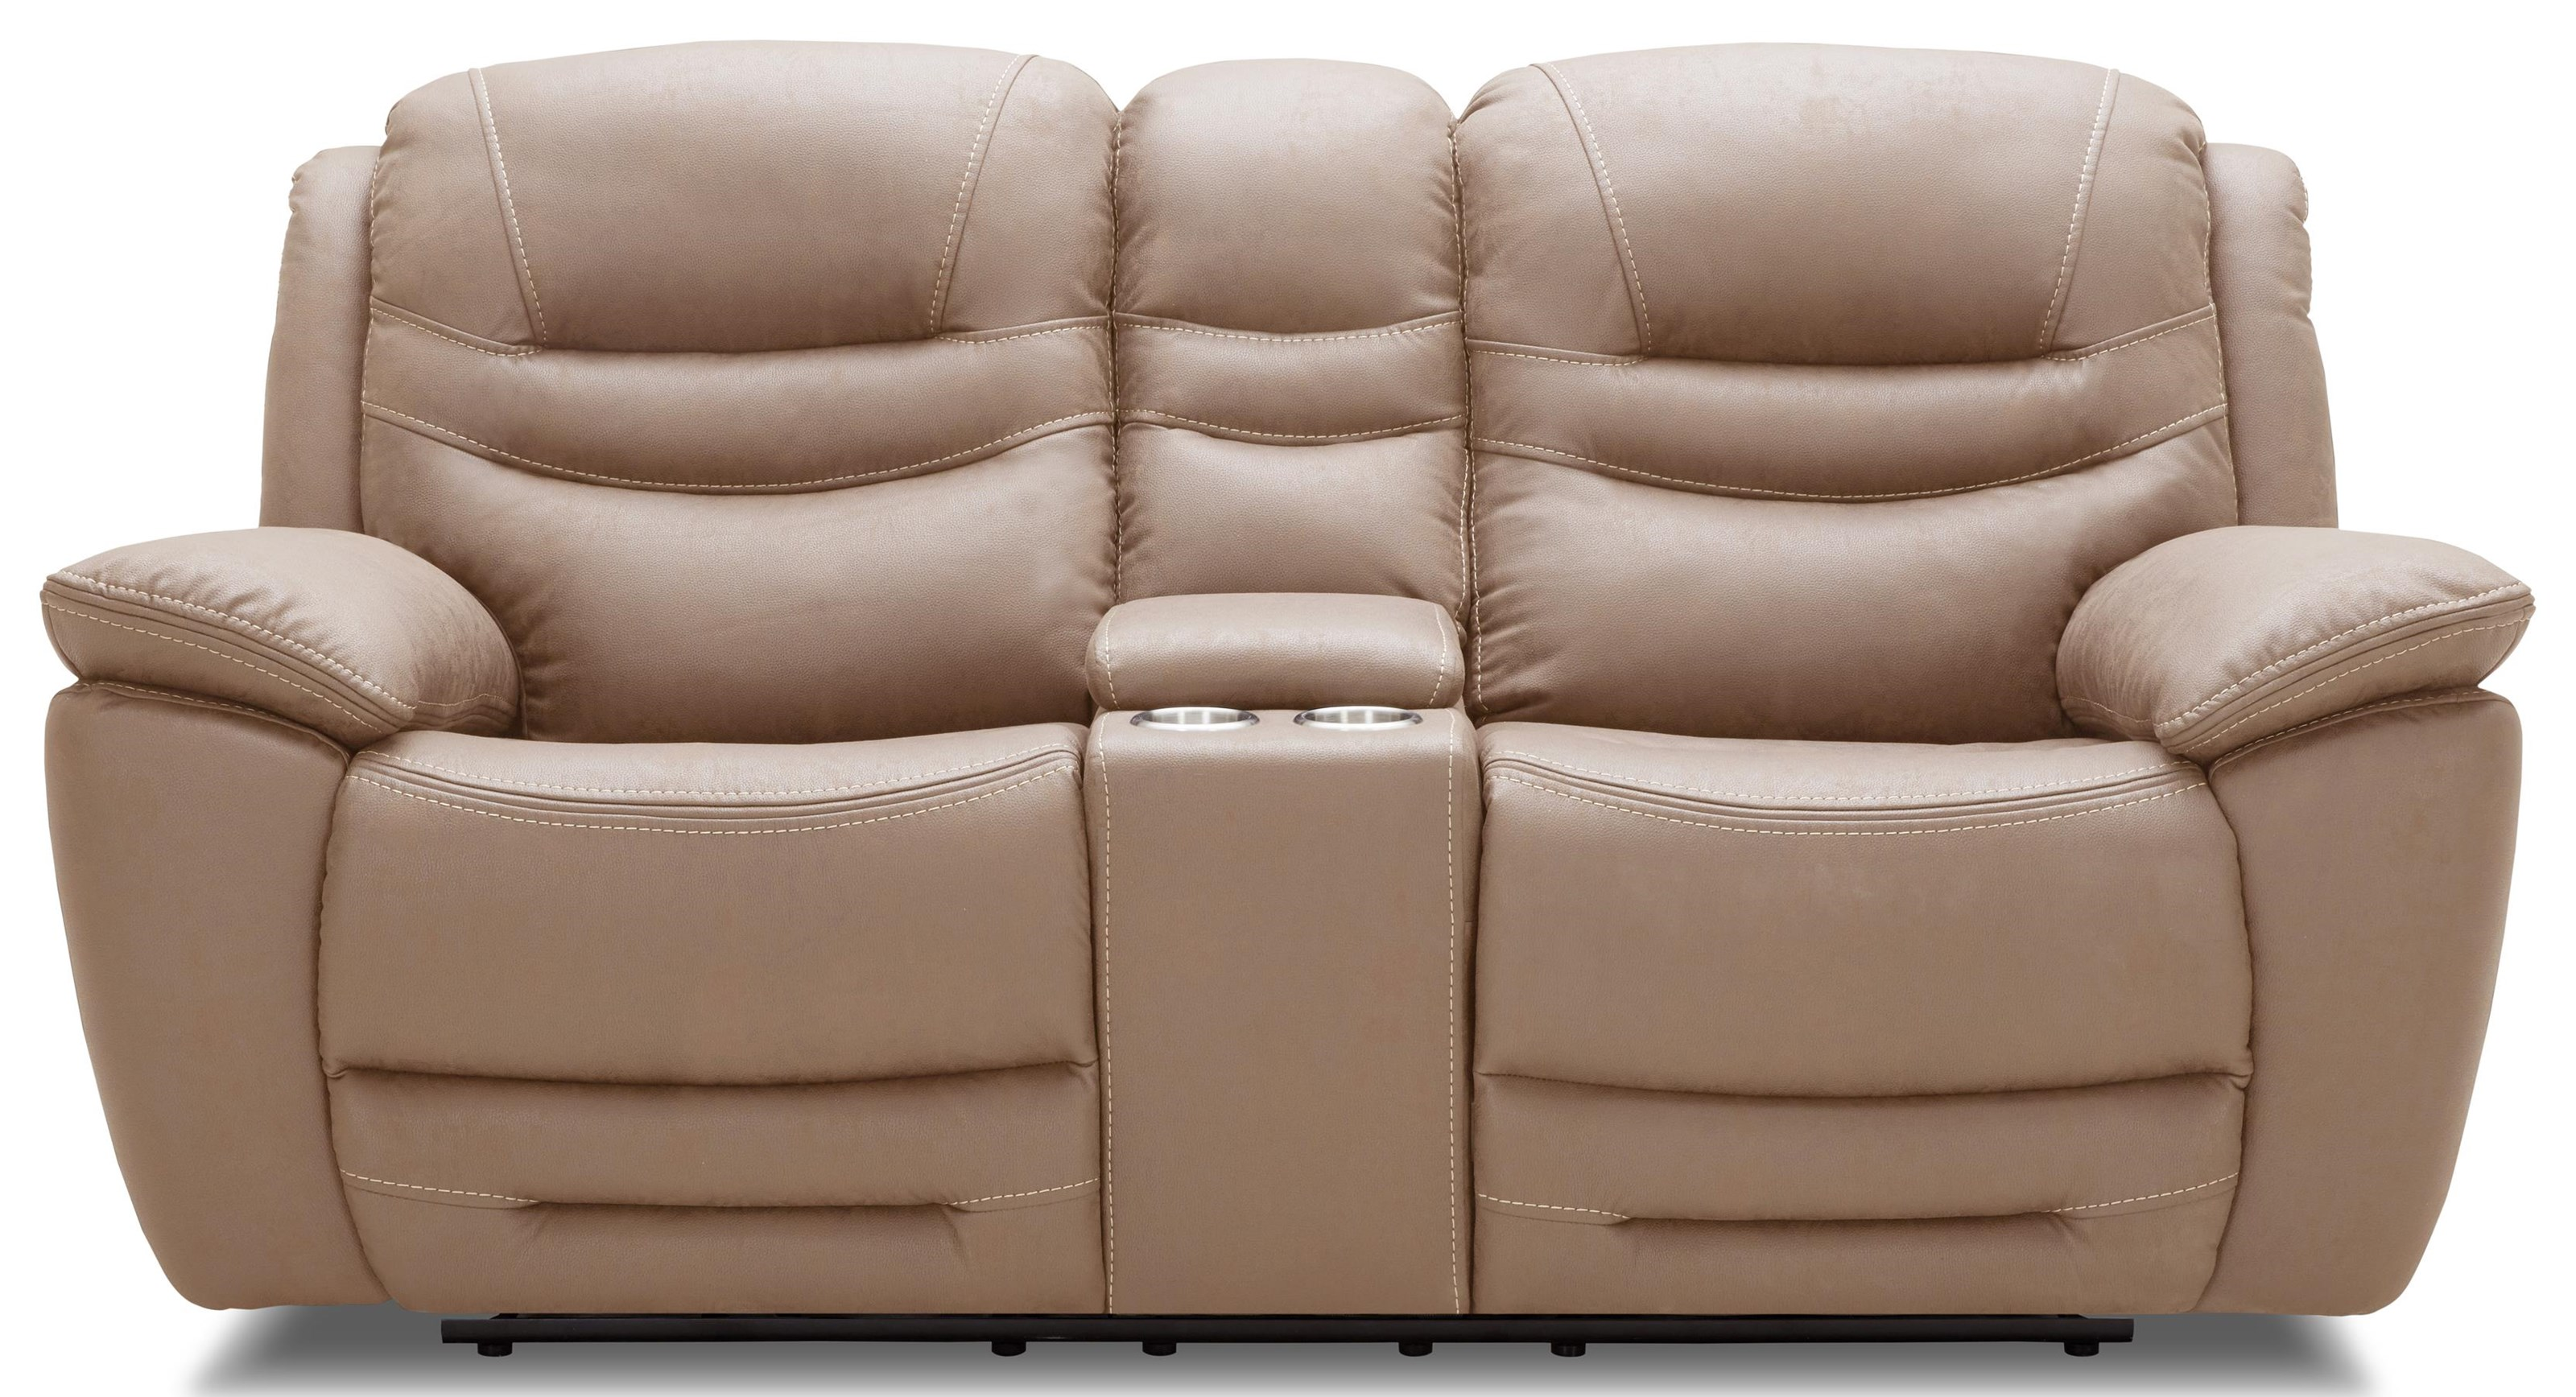 KM083 Power Reclining Loveseat w/ Console by Kuka Home at Beck's Furniture